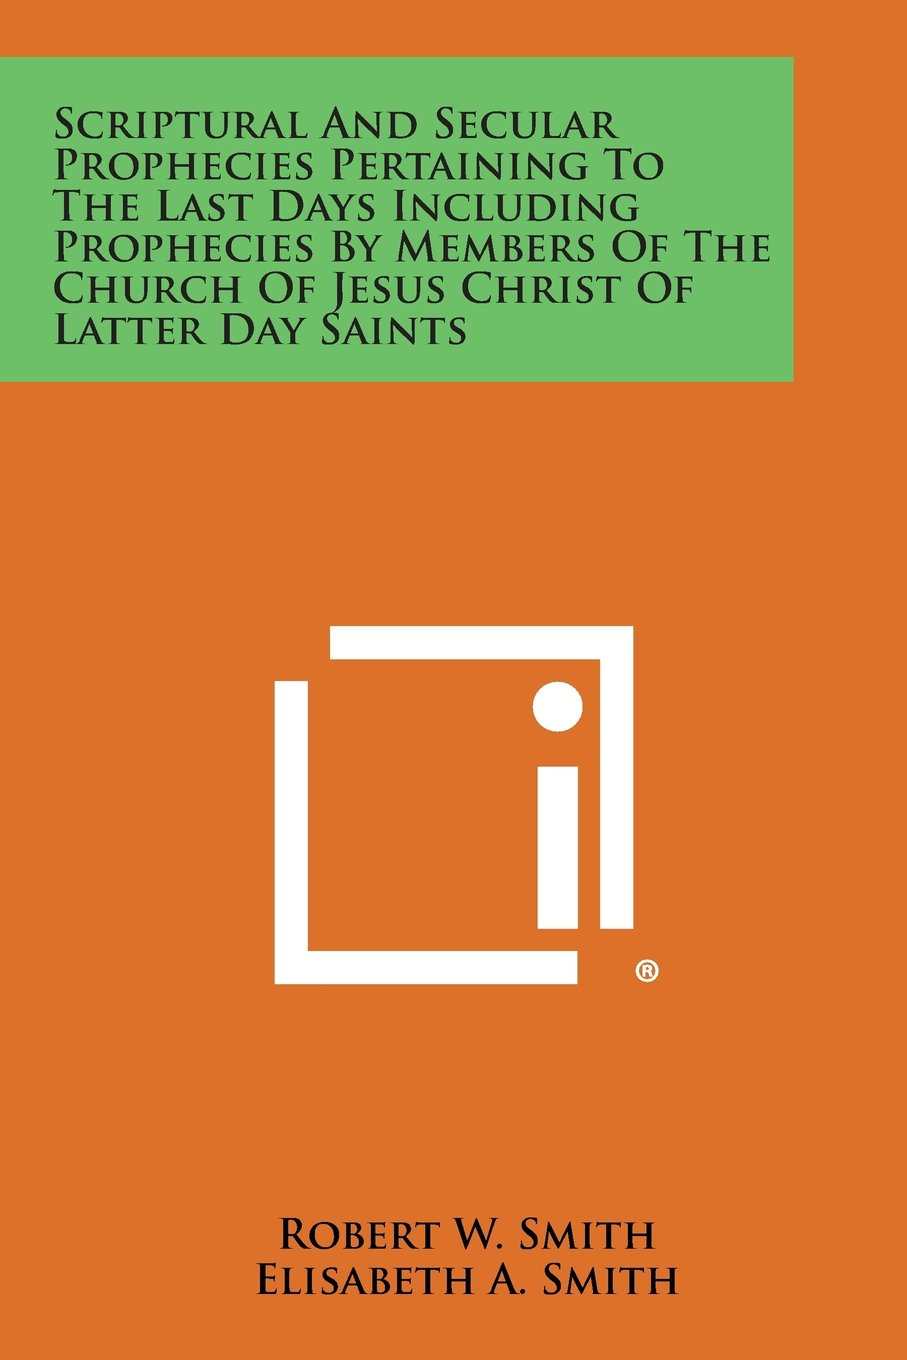 Read Online Scriptural and Secular Prophecies Pertaining to the Last Days Including Prophecies by Members of the Church of Jesus Christ of Latter Day Saints pdf epub